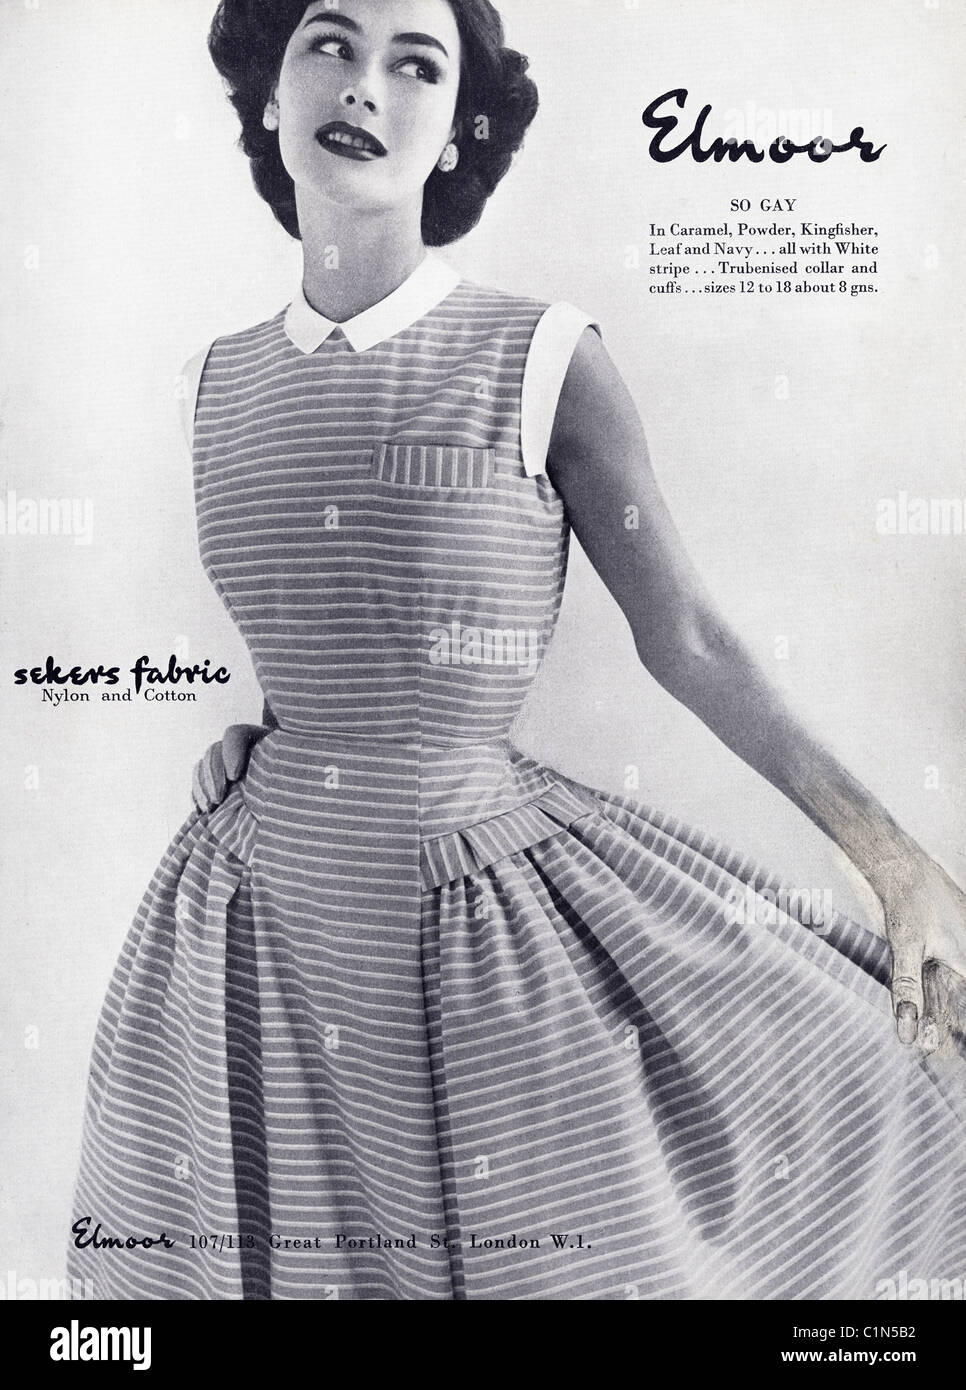 Original Full Page 1950s Advert In Women 39 S Fashion